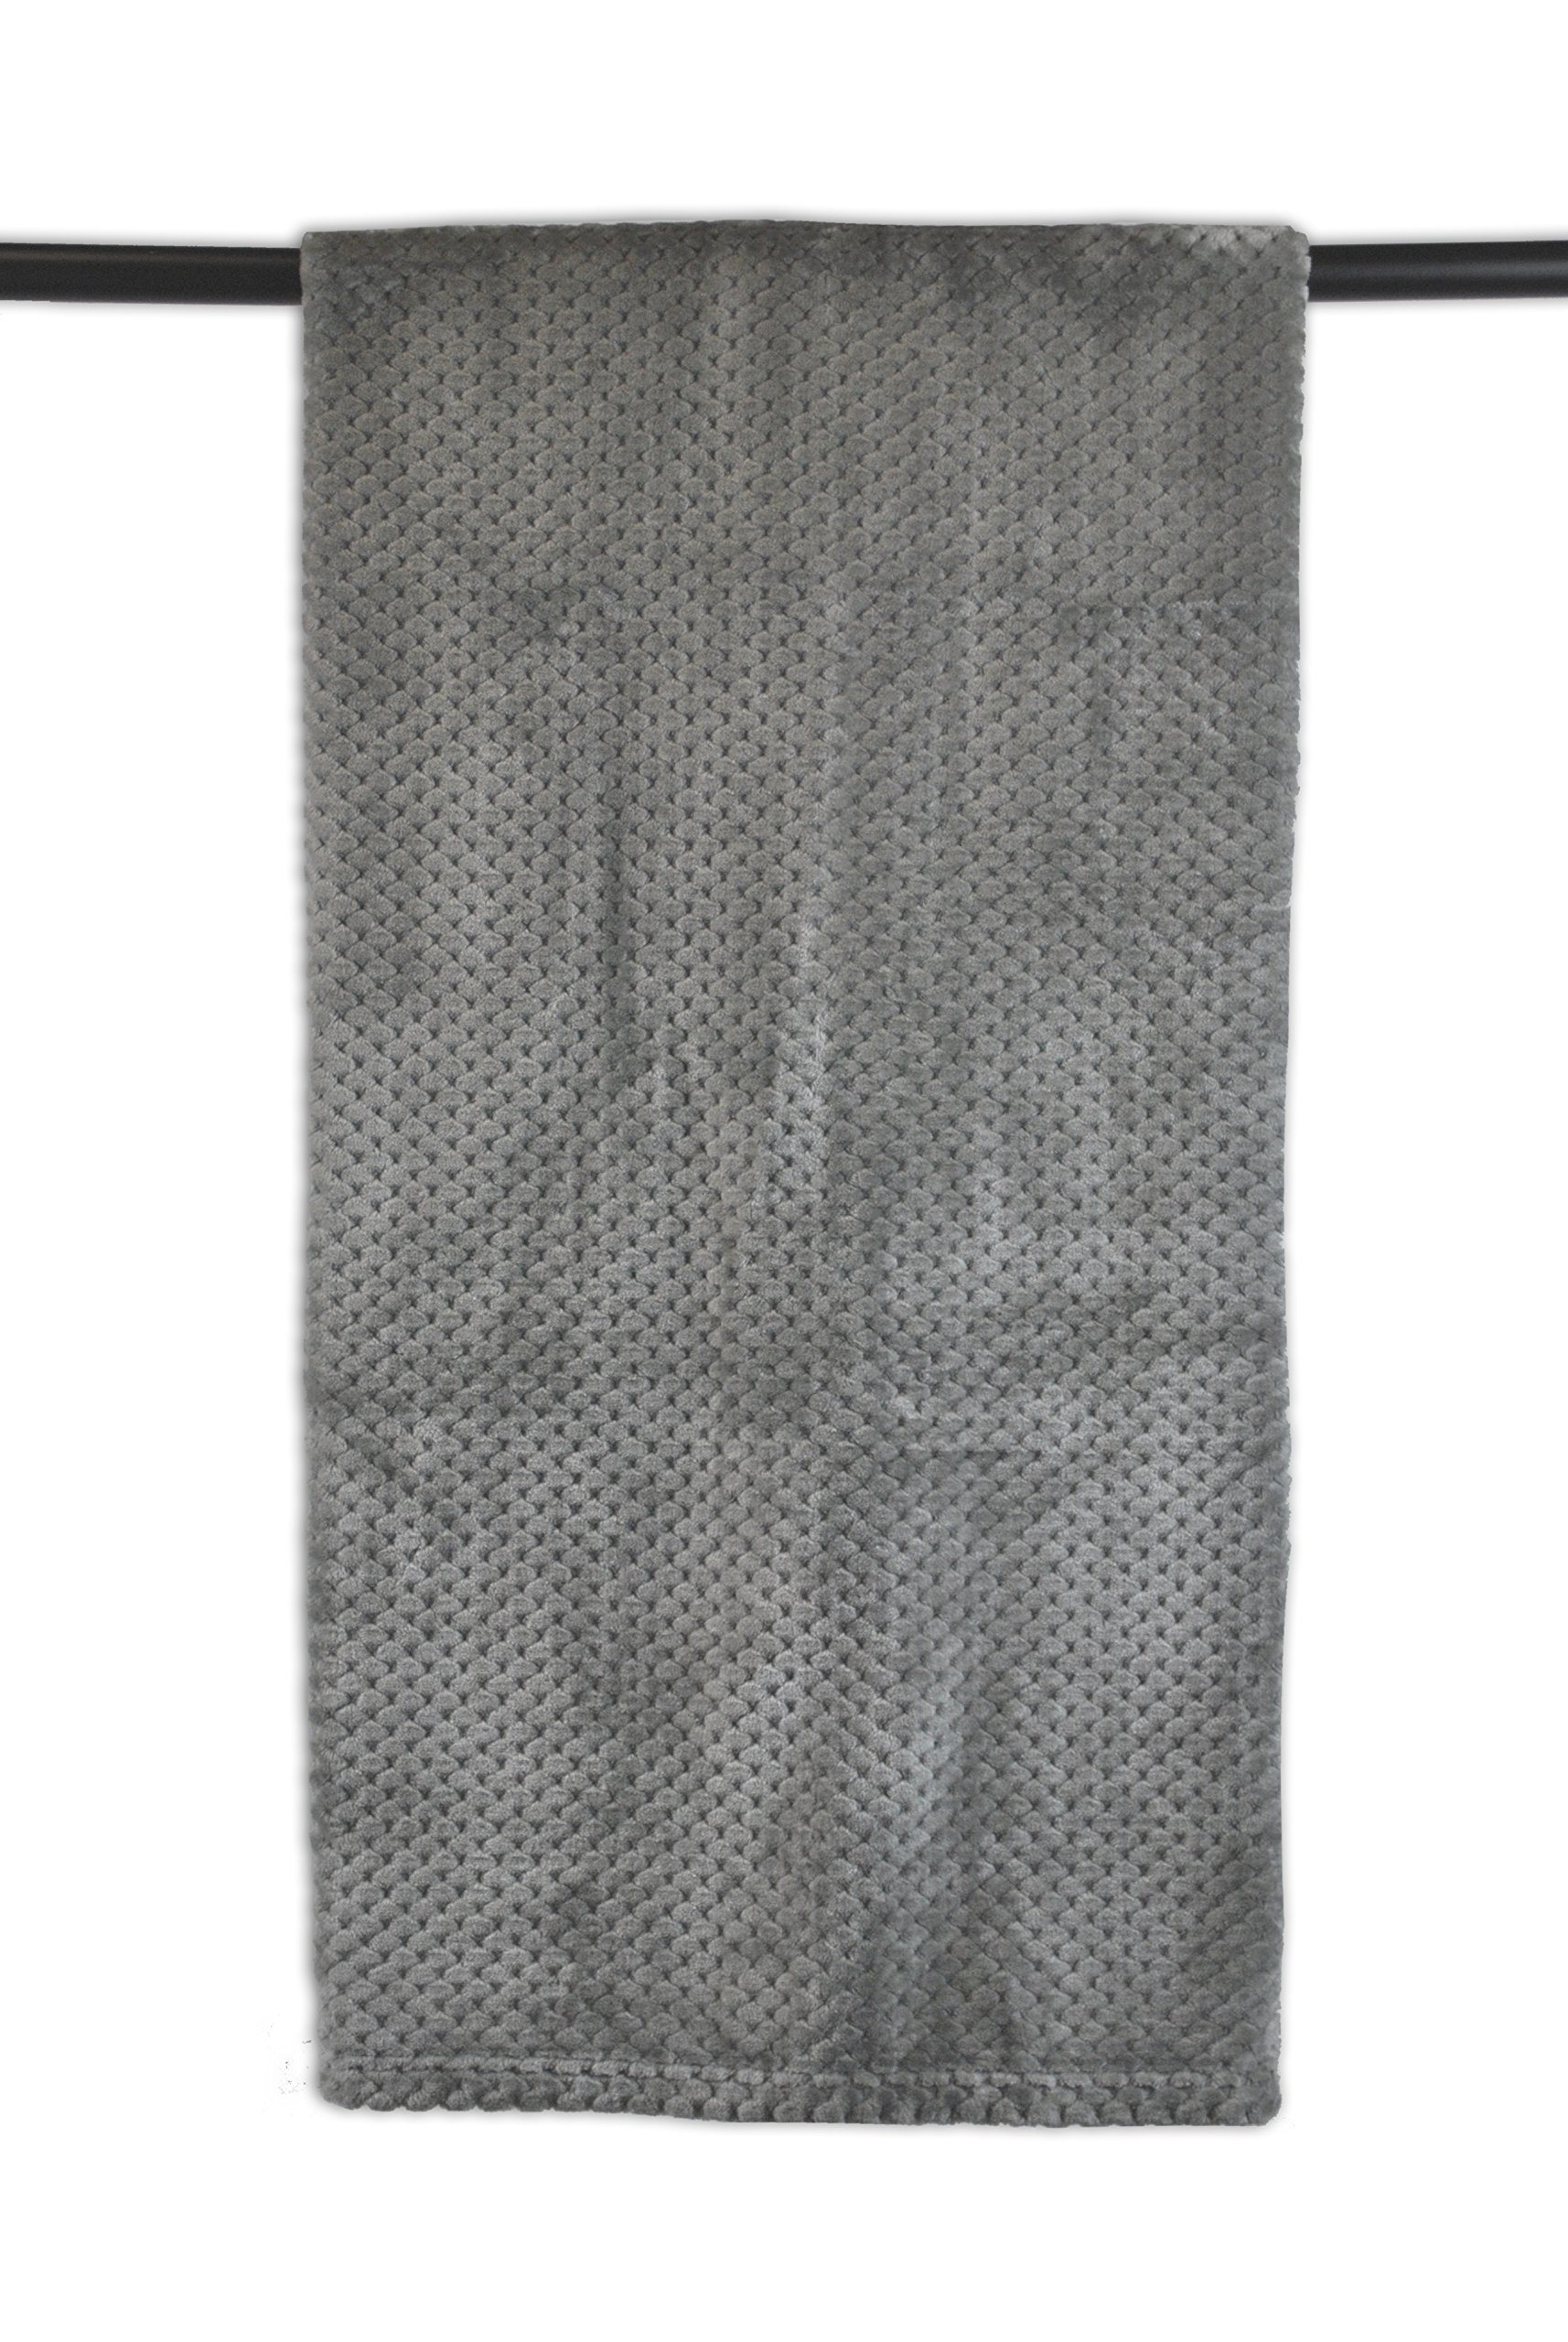 Bone Dry DII Small Pet Throw Blanket, 36x54, Warm, Soft, Plush for Couch, Car, Trunk, Cage, Kennel, Dog House-Gray